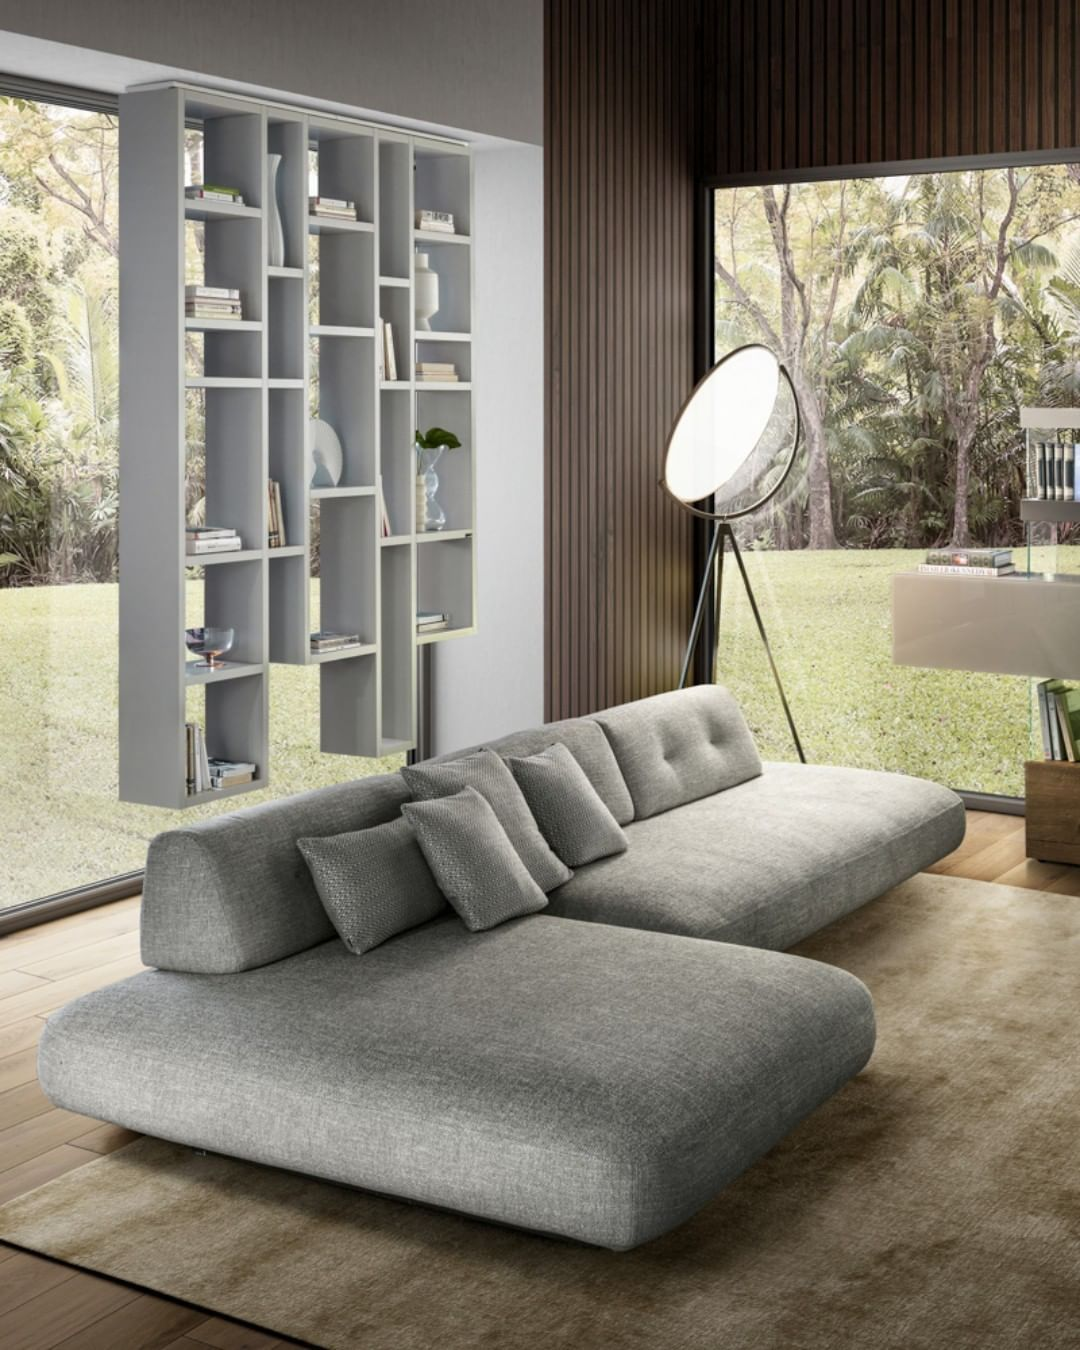 Soft And Rounded Shapes As If Smoothed By The Wind And Water The New Sand Sofa Is Available In The Lago Elements 2020 Col In 2020 Fabric Sofa Design Fabric Sofa Sofa